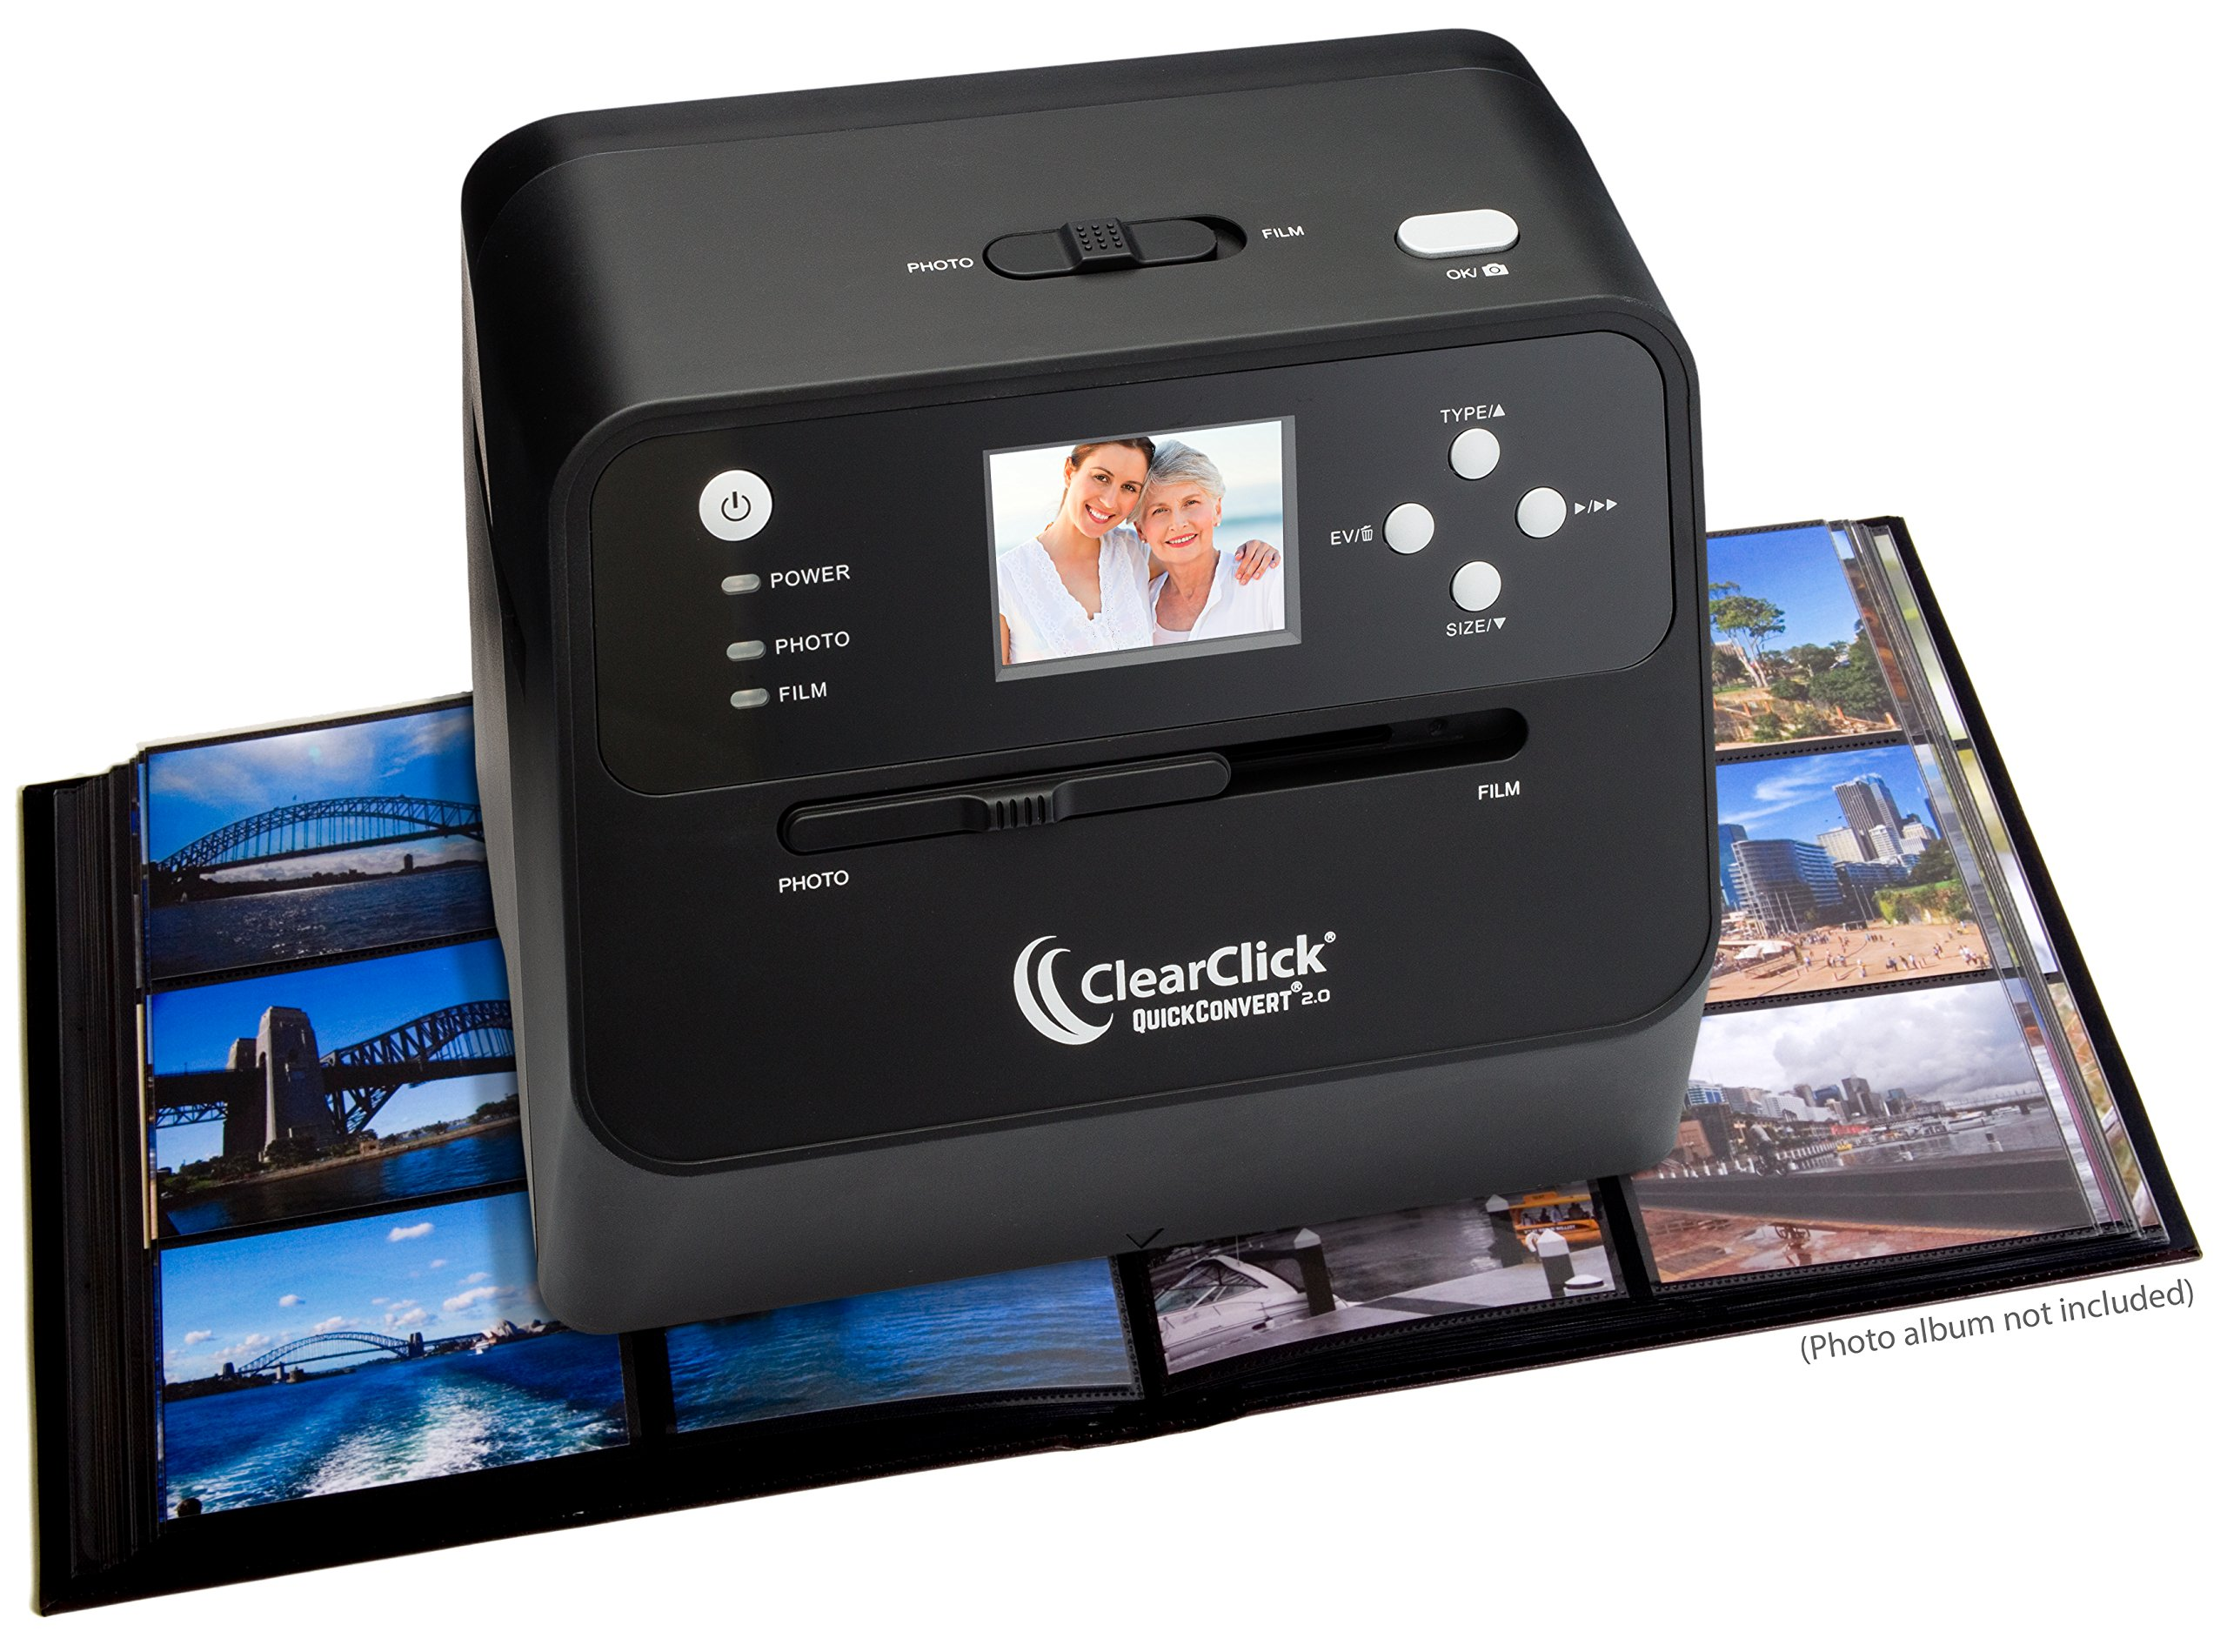 ClearClick 14 MP QuickConvert 2.0 Photo, Slide, and Negative Scanner - Scan 4x6 Photos & 35mm, 110, 126 Film by ClearClick